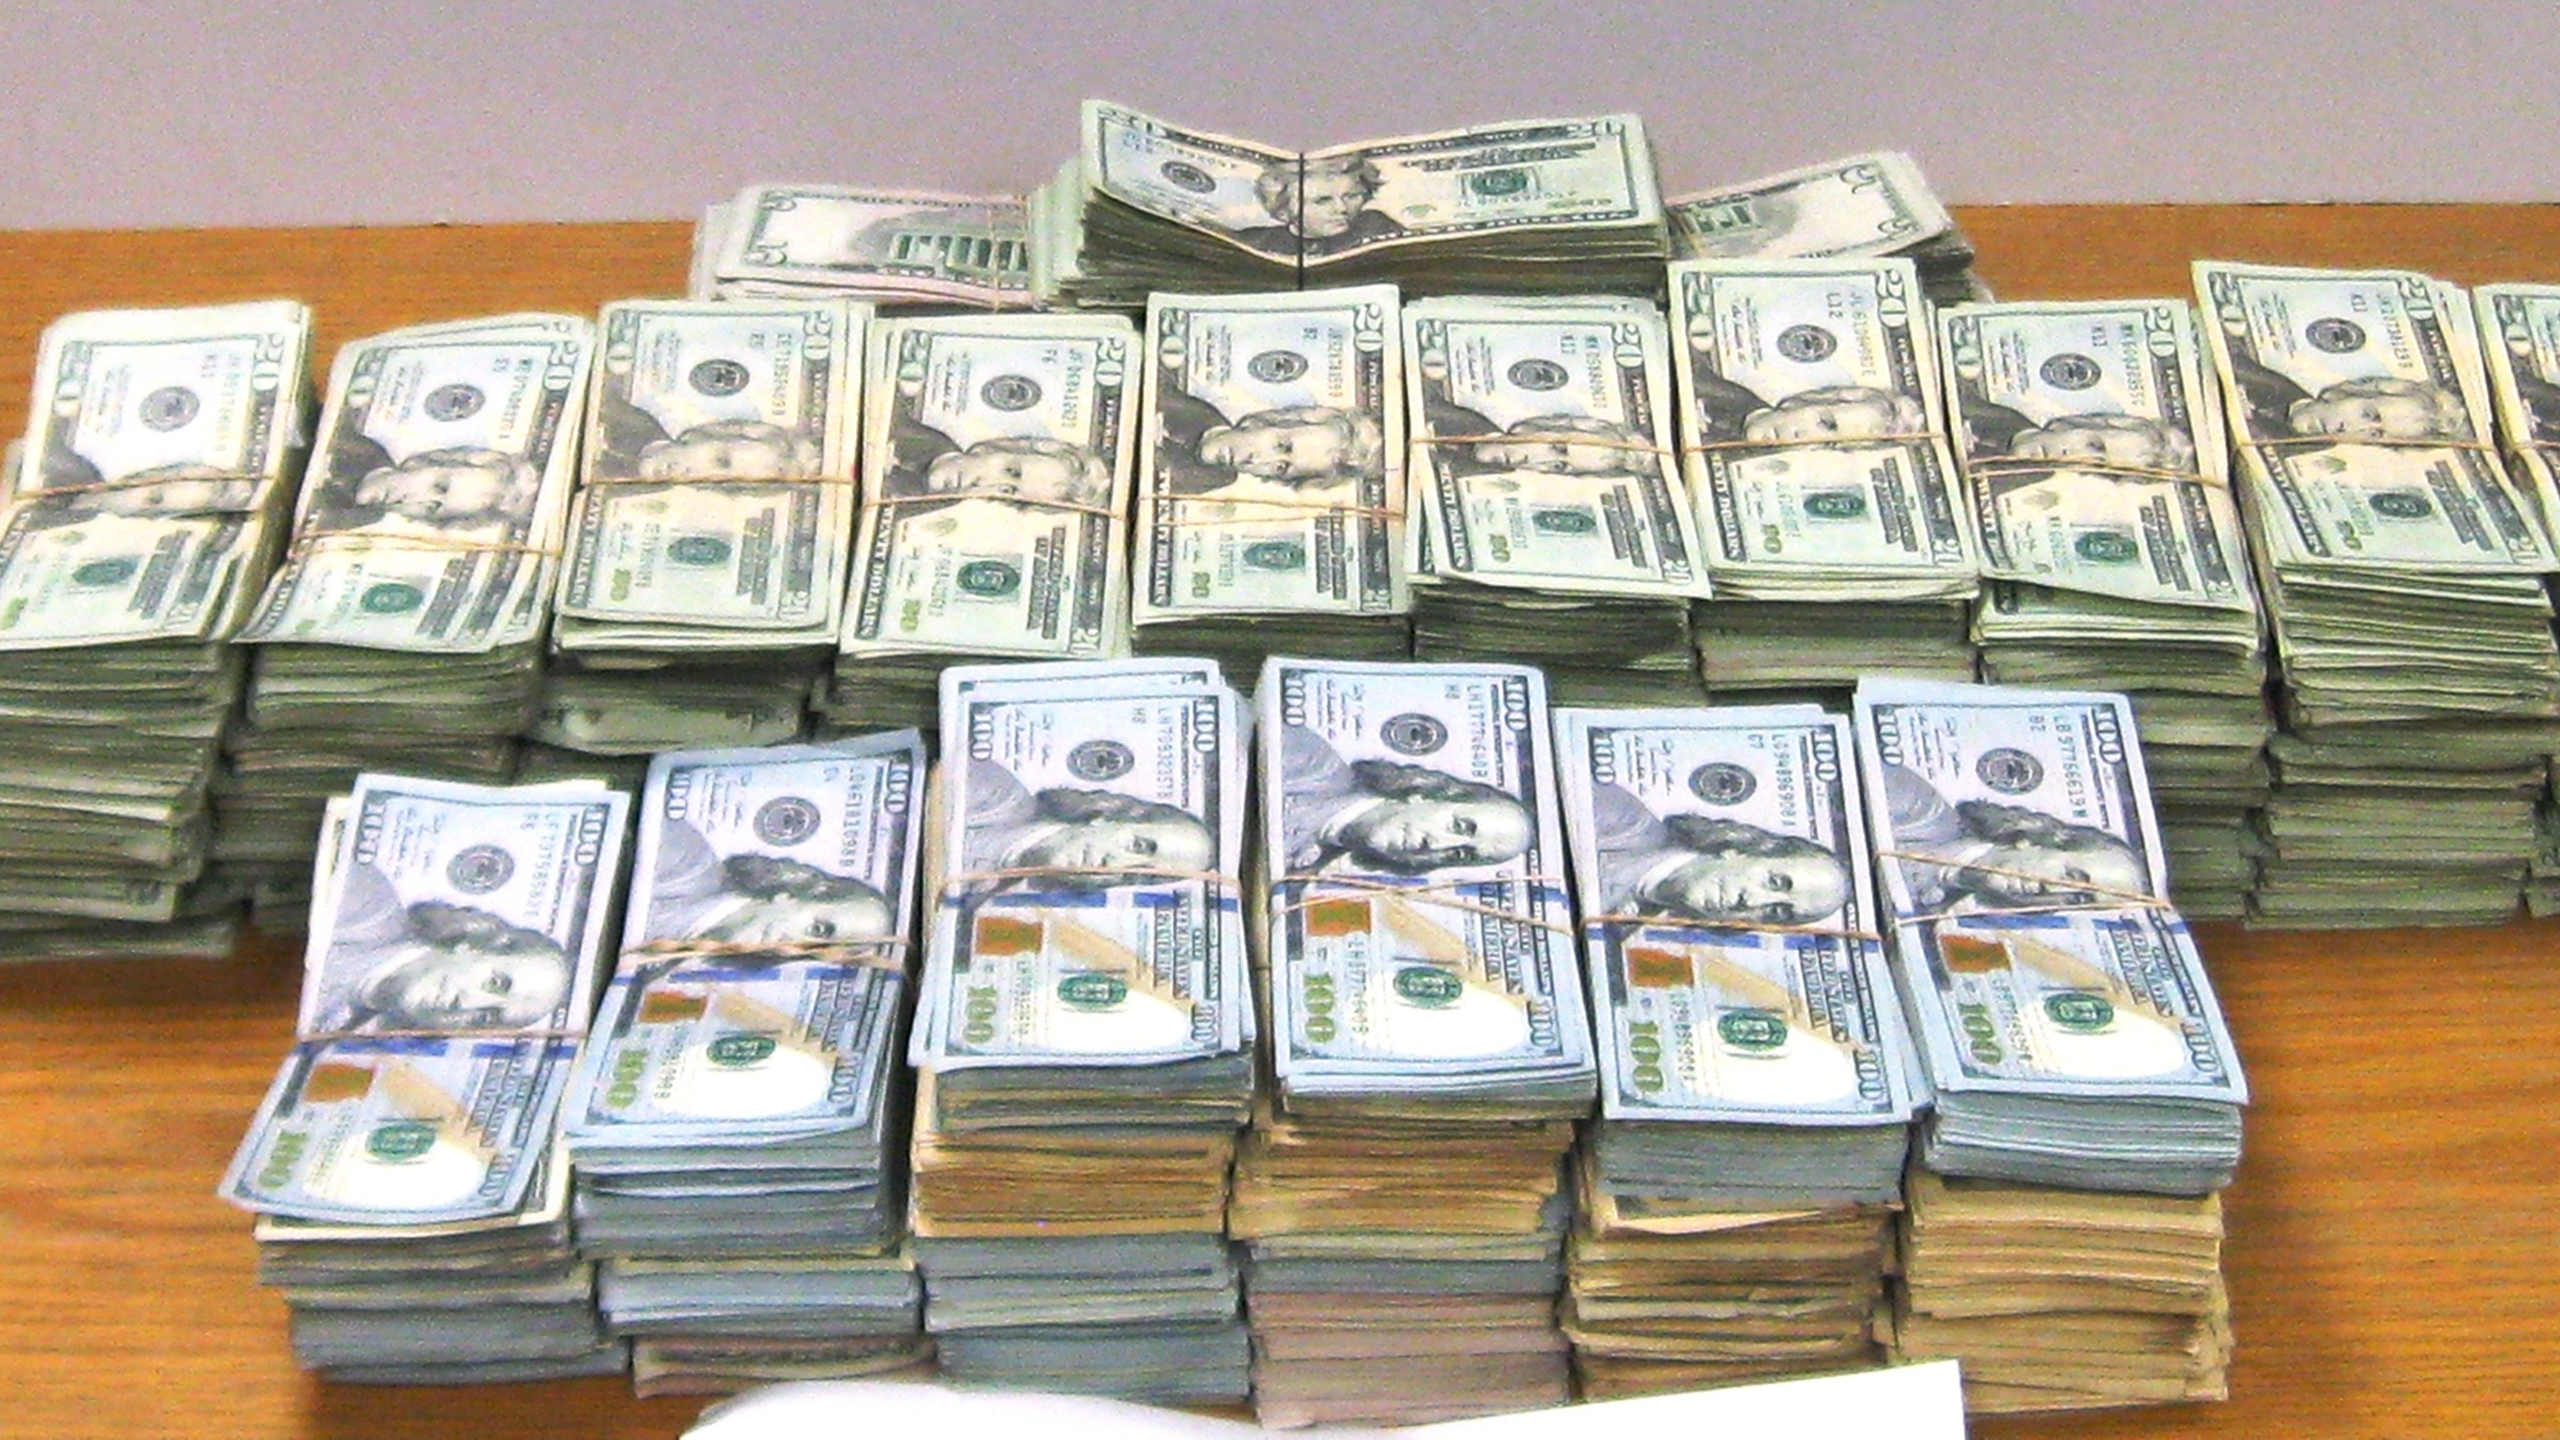 Hid, Currency, $269K, 01192016, courtesy CBP Hidalgo_1453482014364.jpg